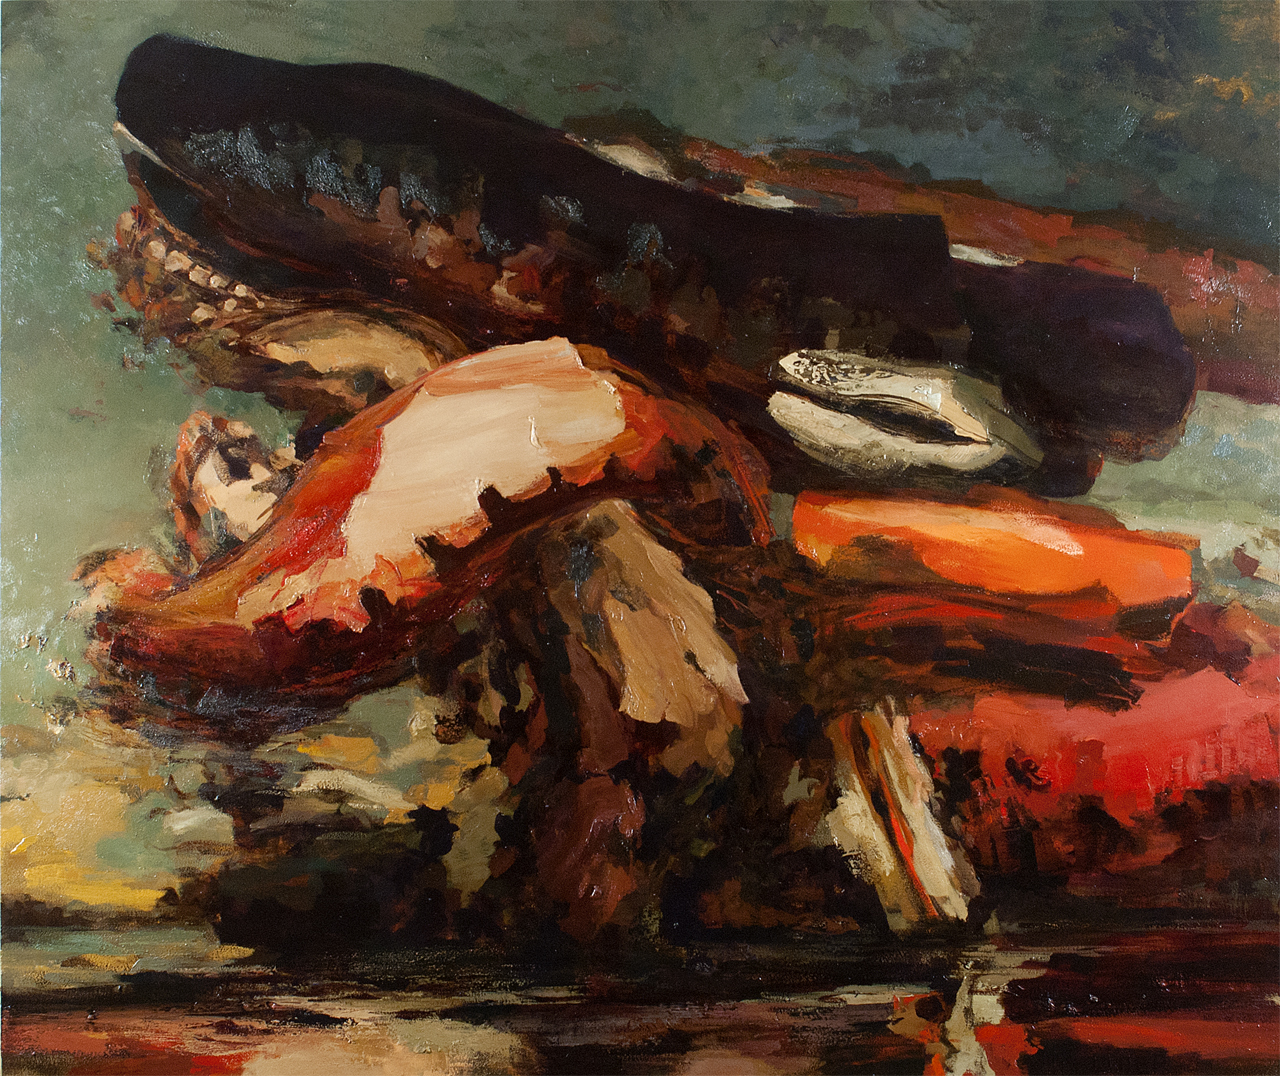 From Goya to Ab-Ex in a Series of Brushstrokes